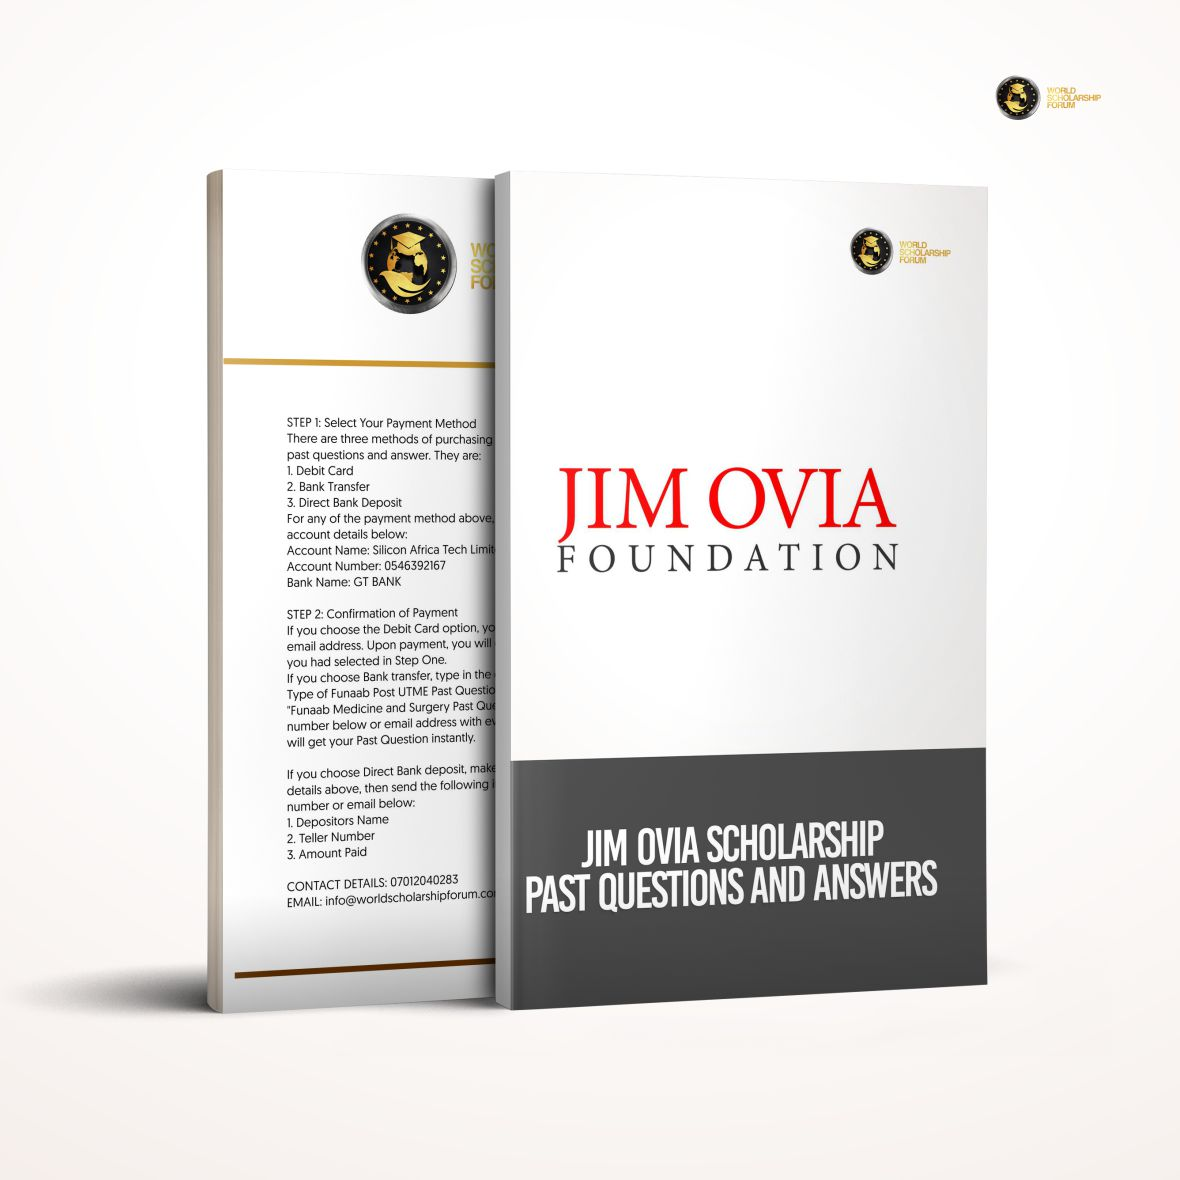 Jim Ovia Foundation Undergraduate Scholarship Test Questions